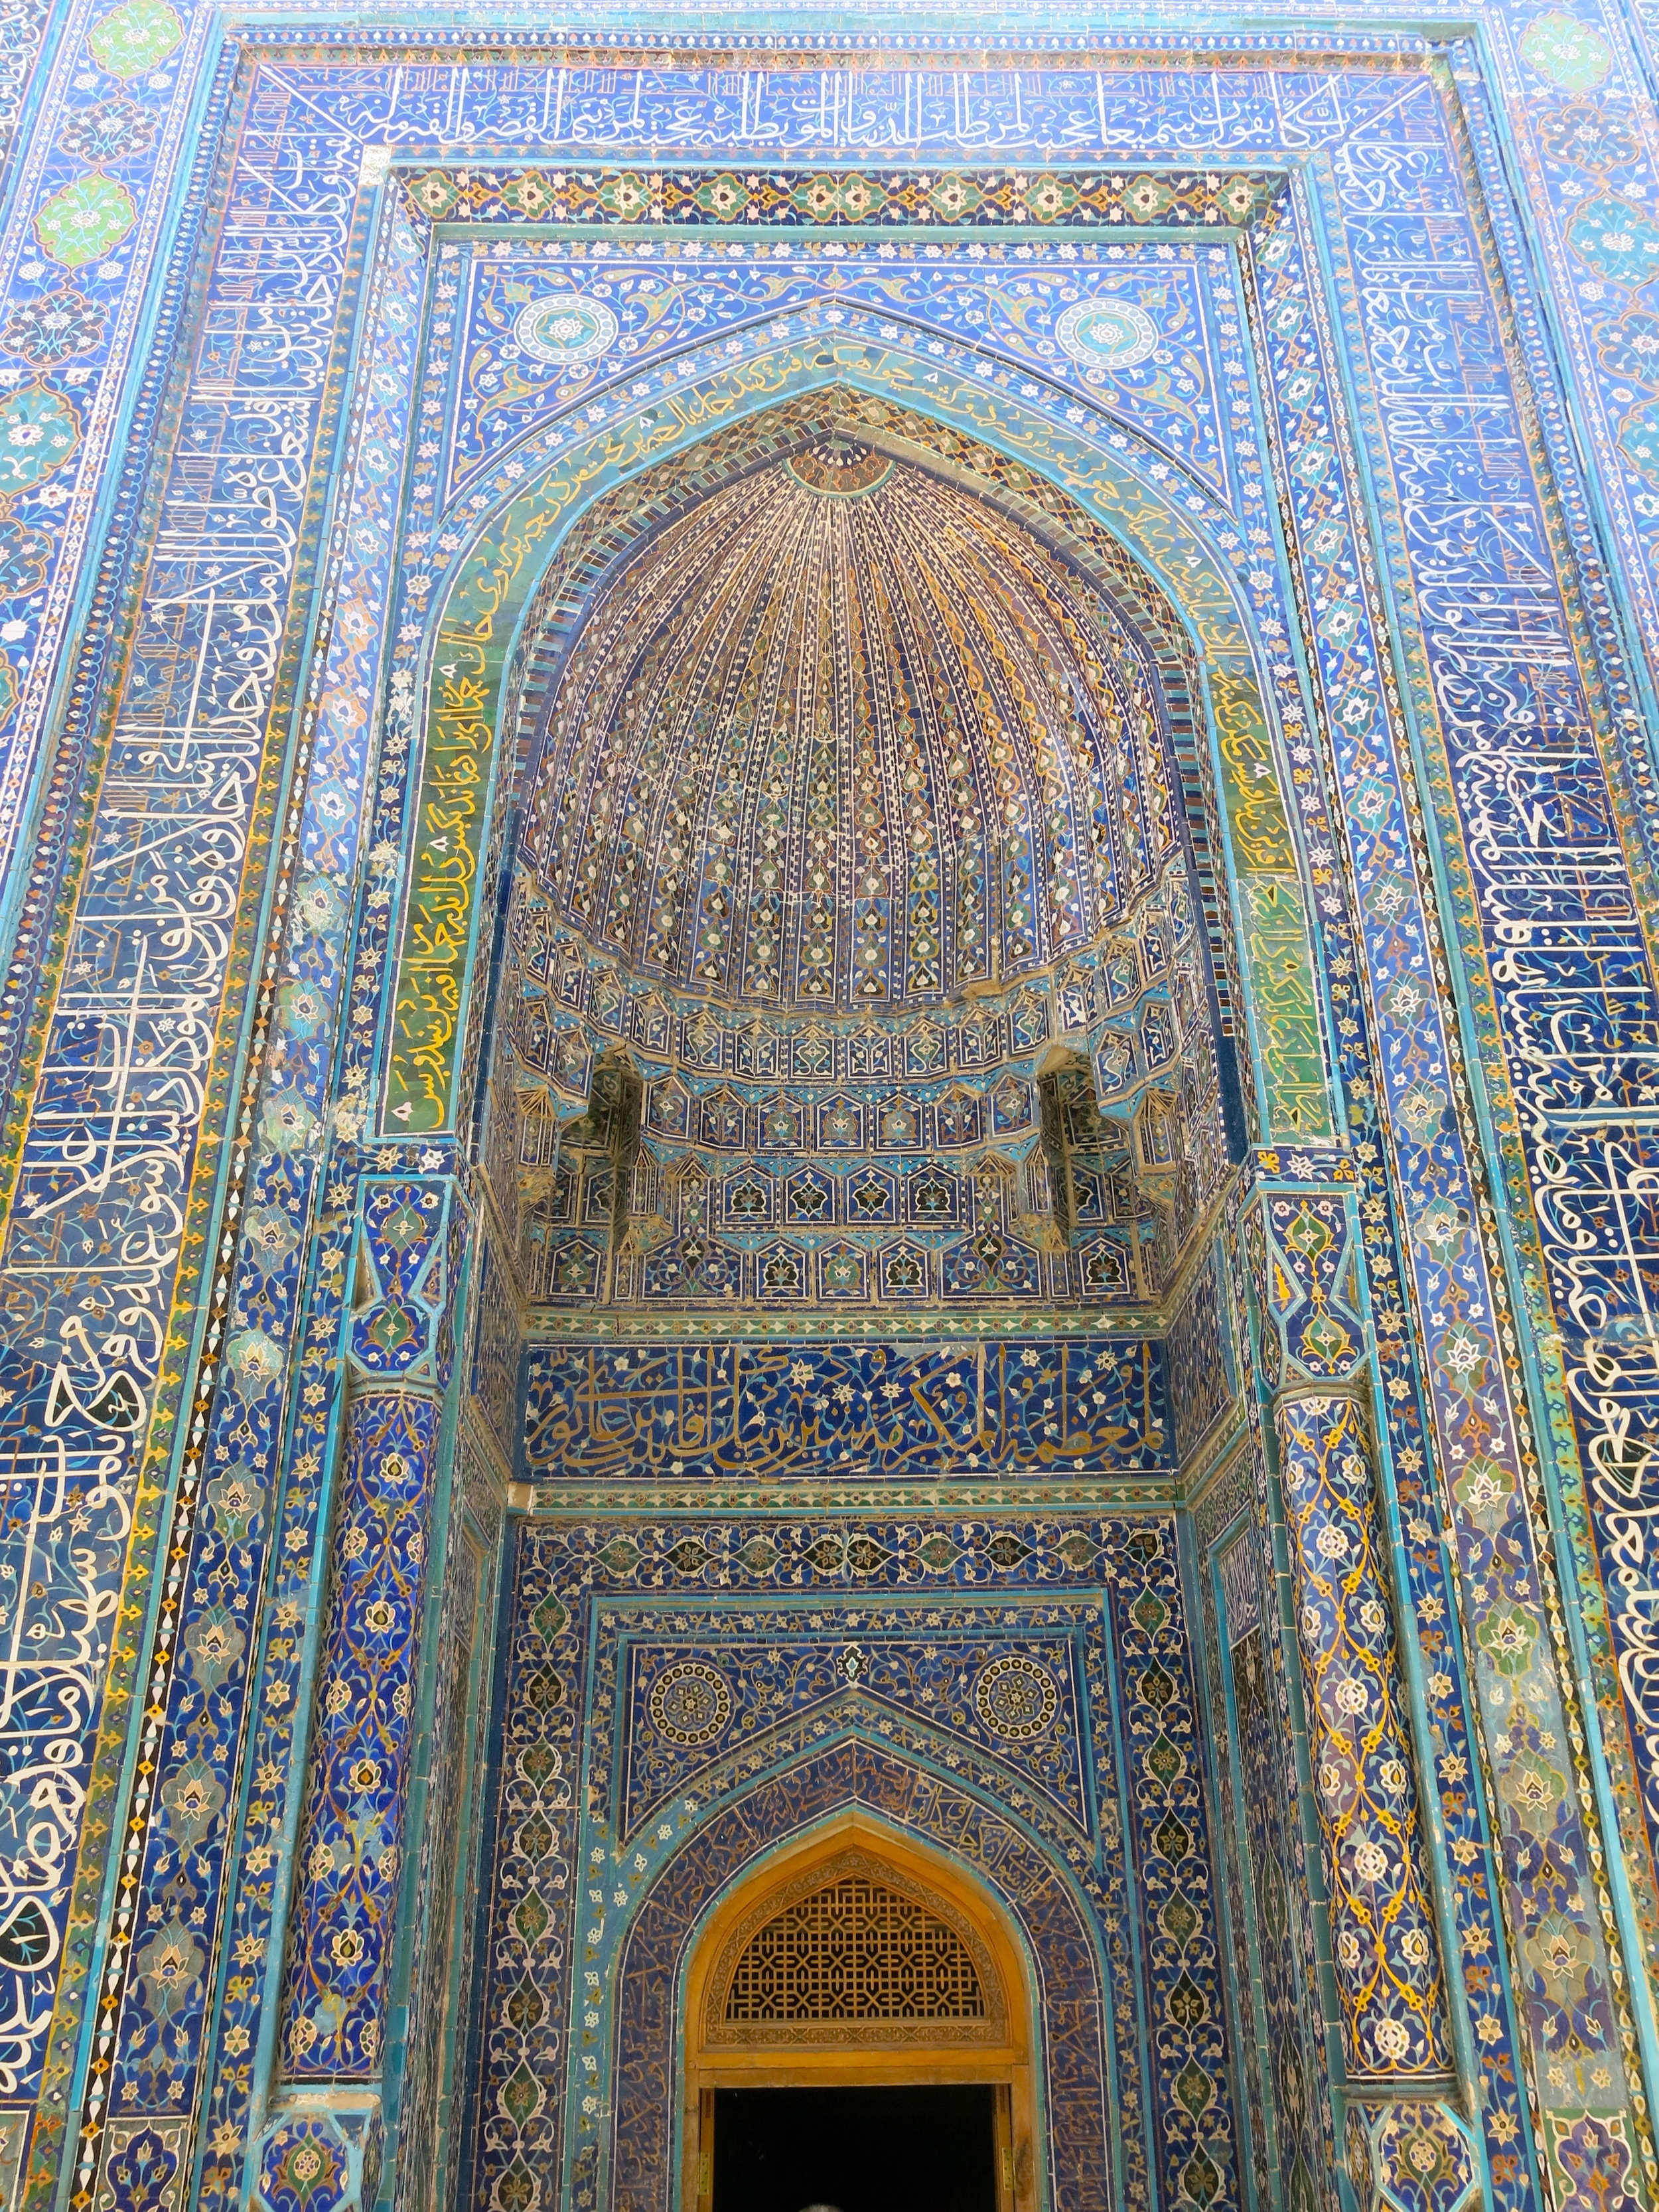 The facade of a mausoleum within Shah-i-Zinda complex